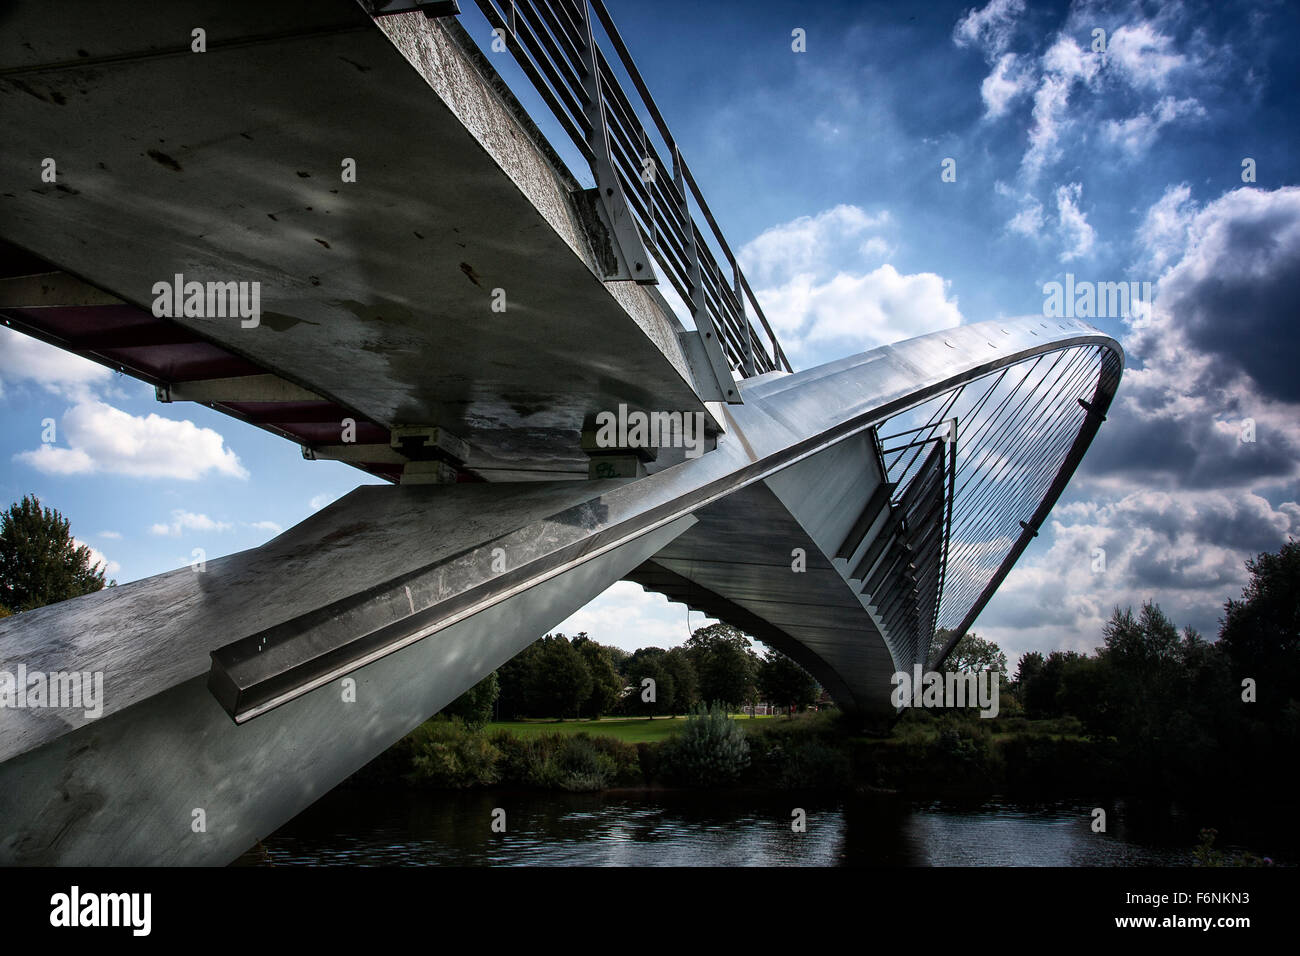 Millenium Bridge York, UK Imagen De Stock